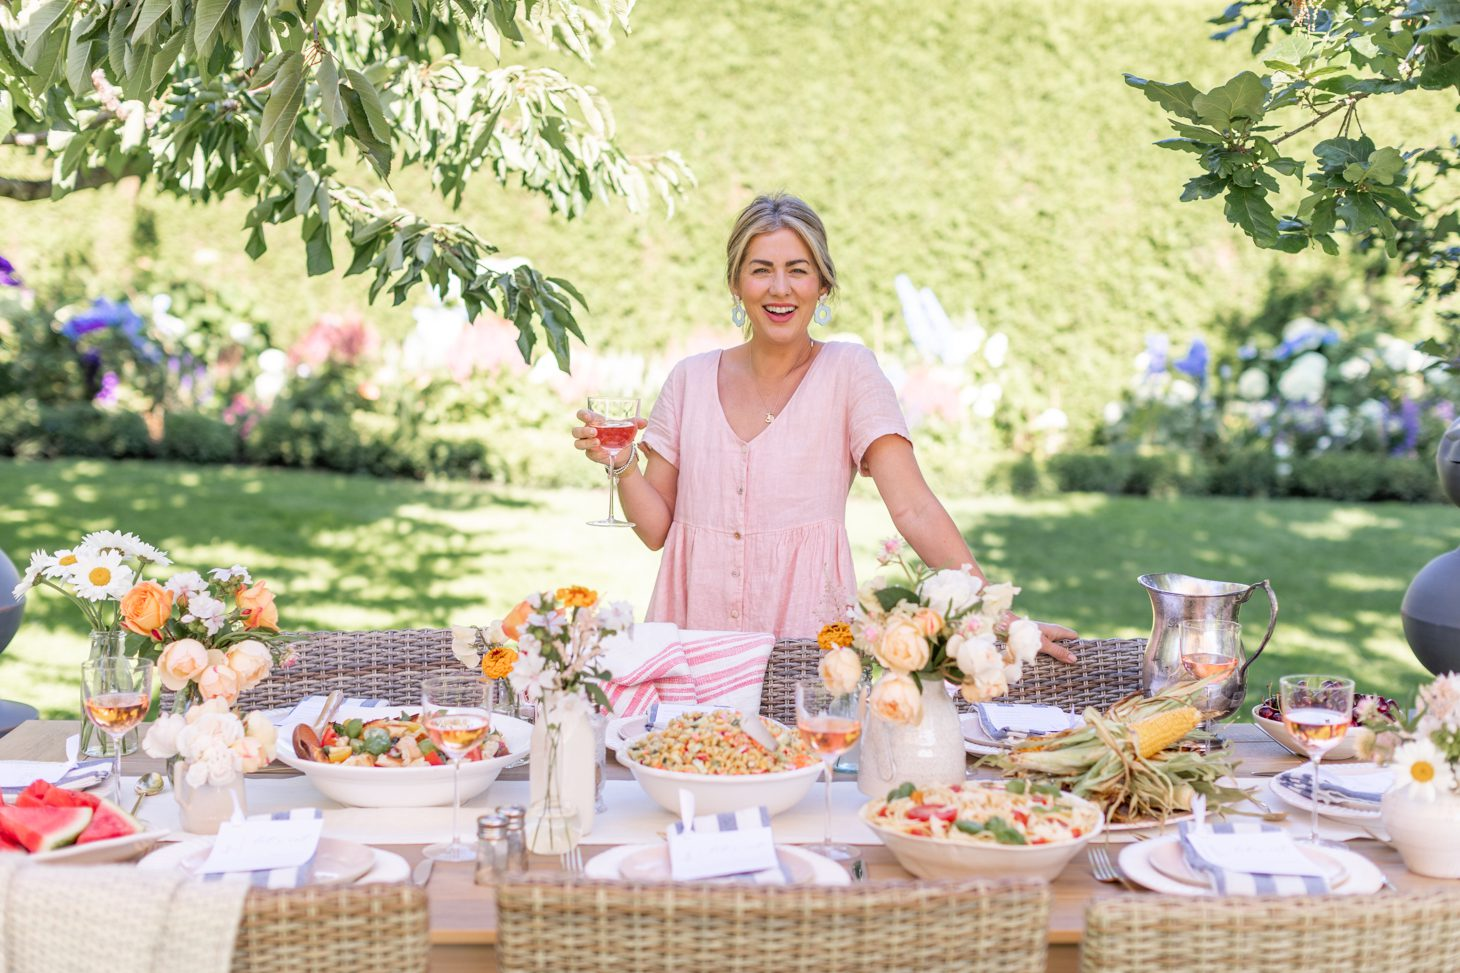 The Best Summer Dinner Tablescape